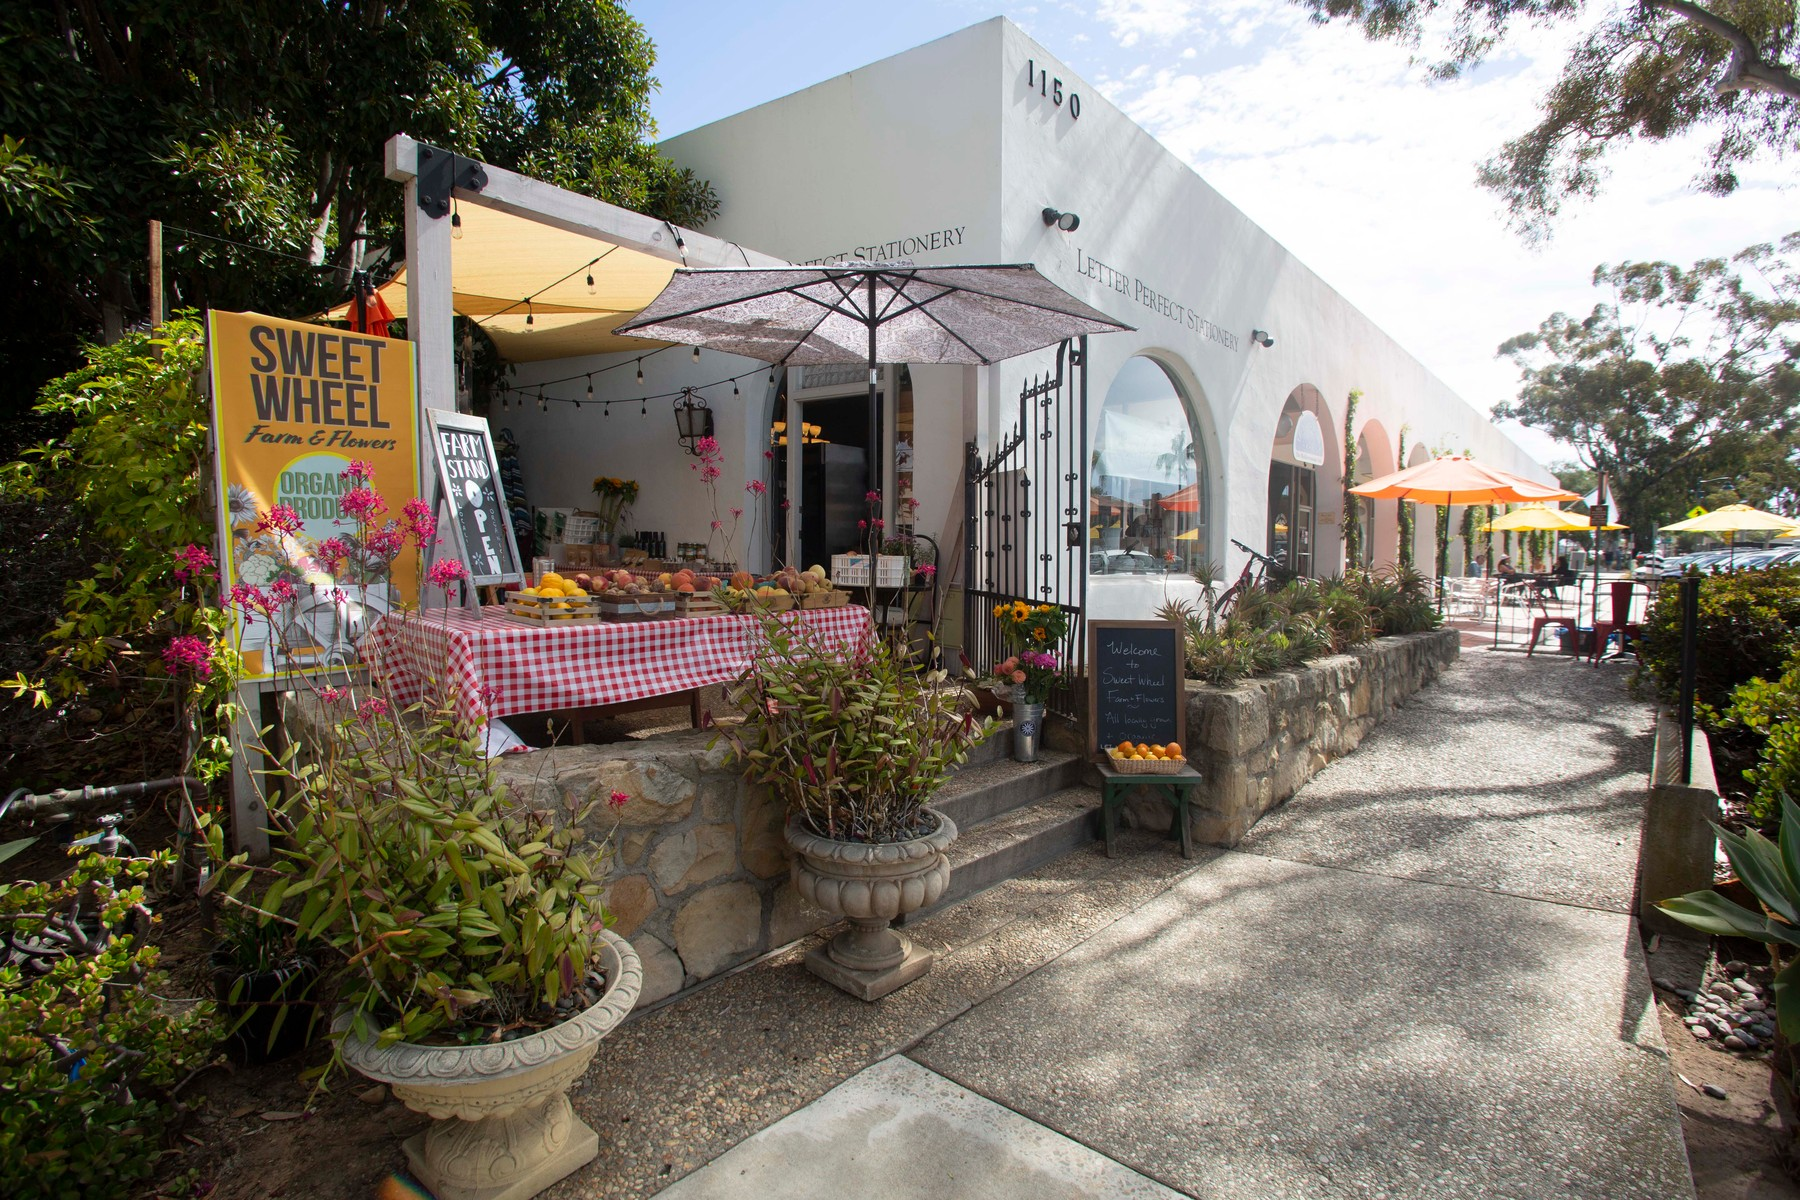 EXCLUSIVE: The Duke and Duchess of Sussex have bought a home Montecito CA. Here are some of the Local sights, restaurants, boutiques, toy shops, beaches, Polo Club and more!. 13 Aug 2020,Image: 552248937, License: Rights-managed, Restrictions: World Rights, Model Release: no, Credit line: MEGA / The Mega Agency / Profimedia